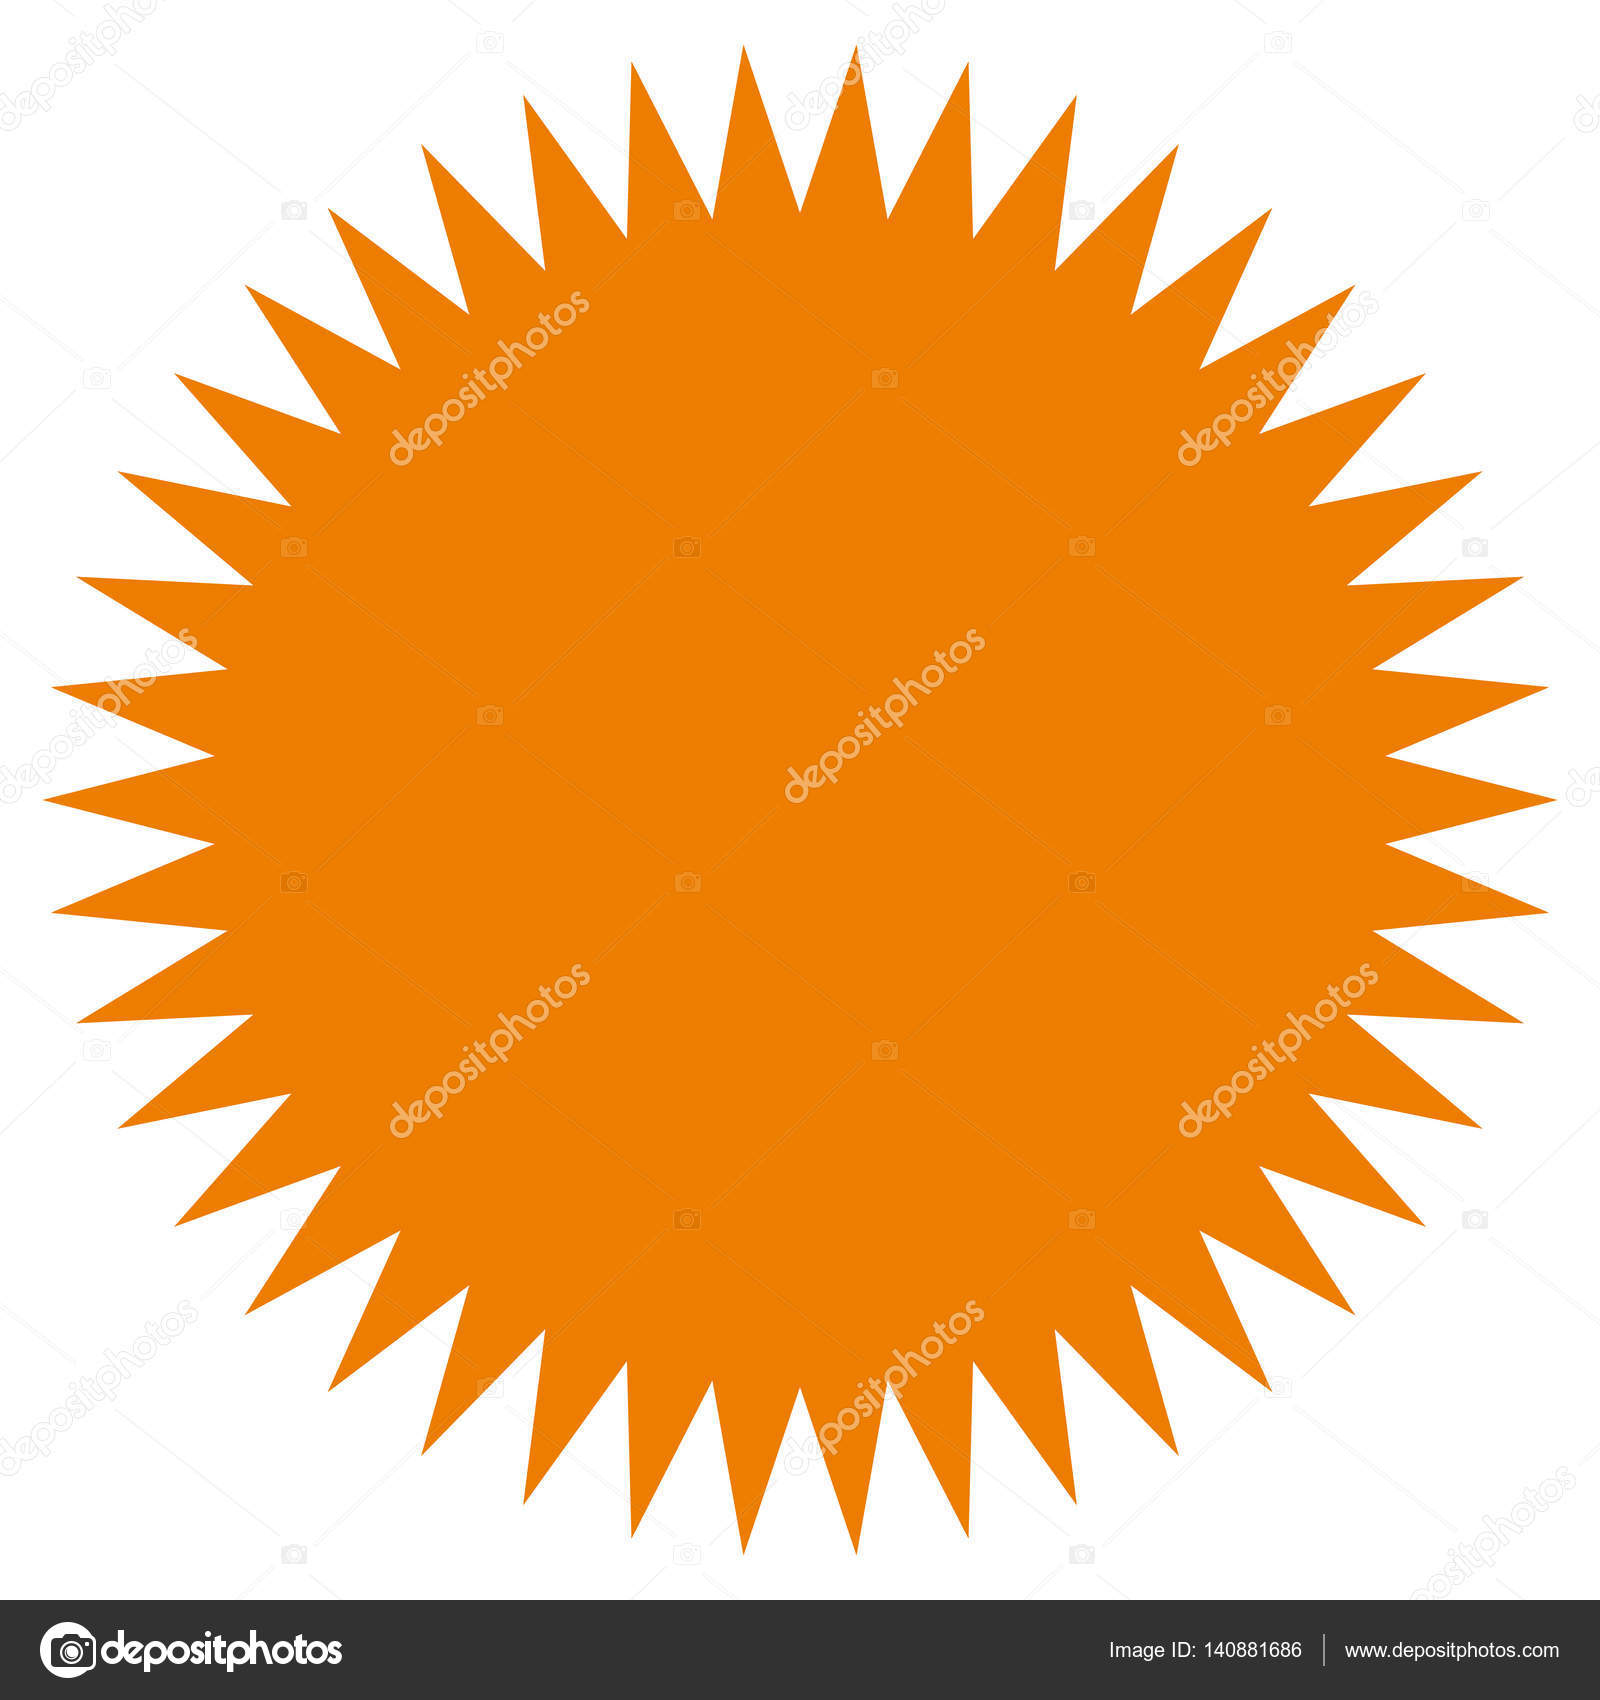 starburst sunburst shape stock vector vectorguy 140881686 rh depositphotos com sunburst vector vintage vector sunburst background